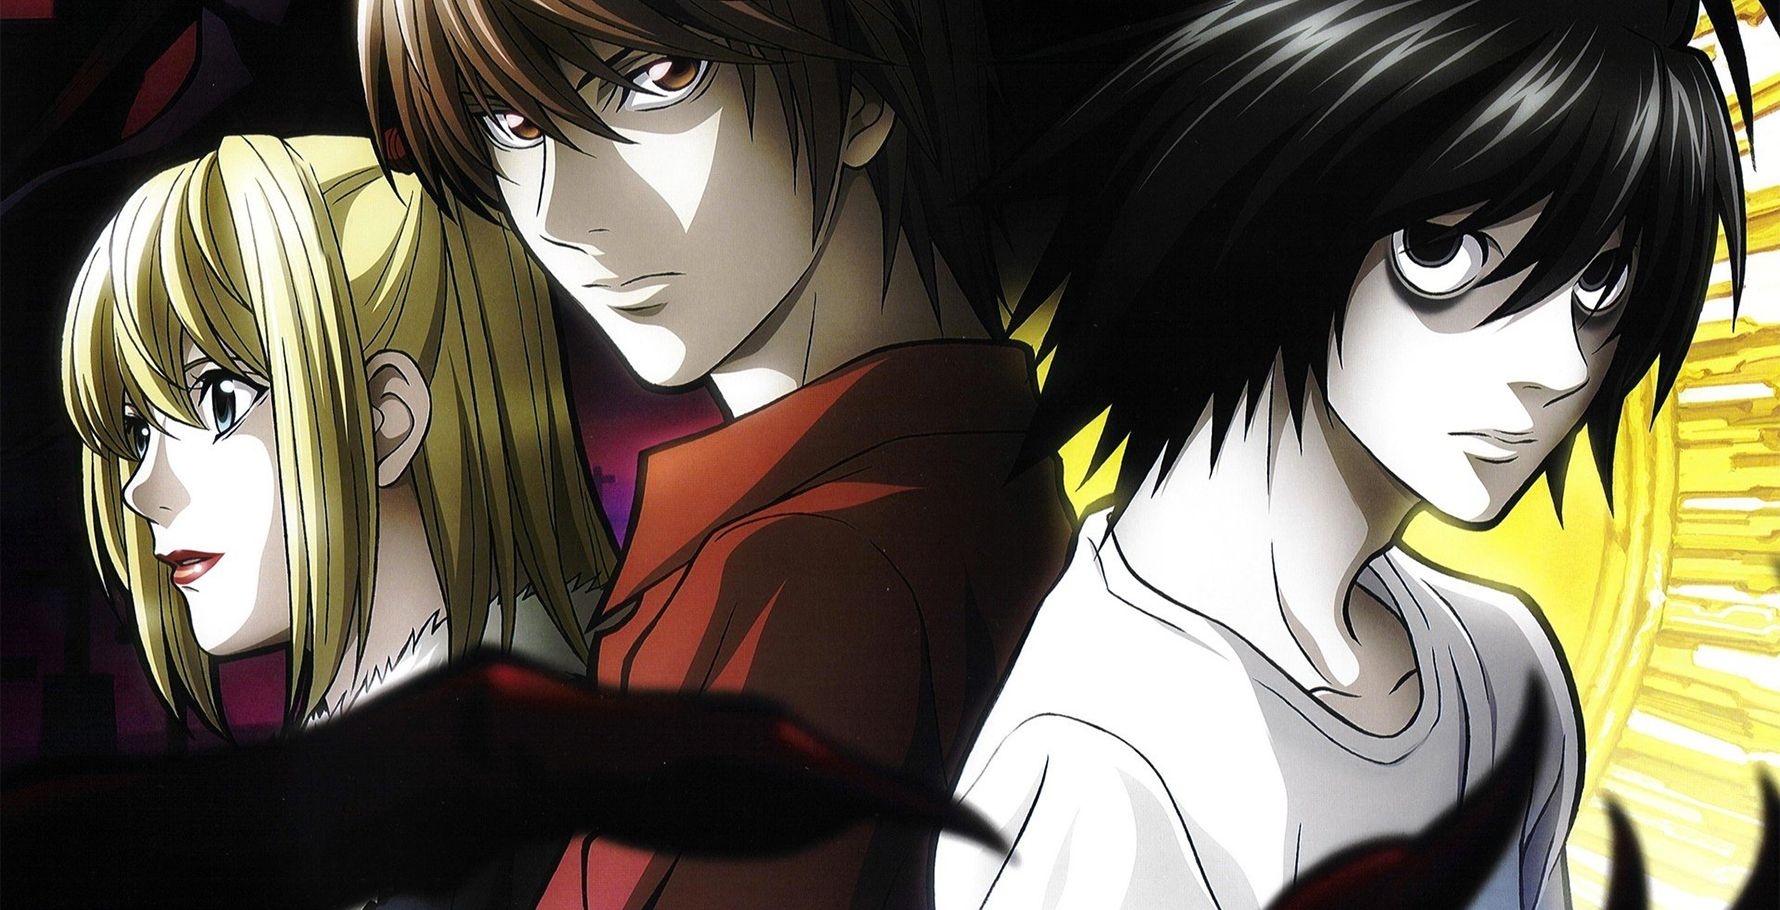 The myers briggs personality types of death note characters